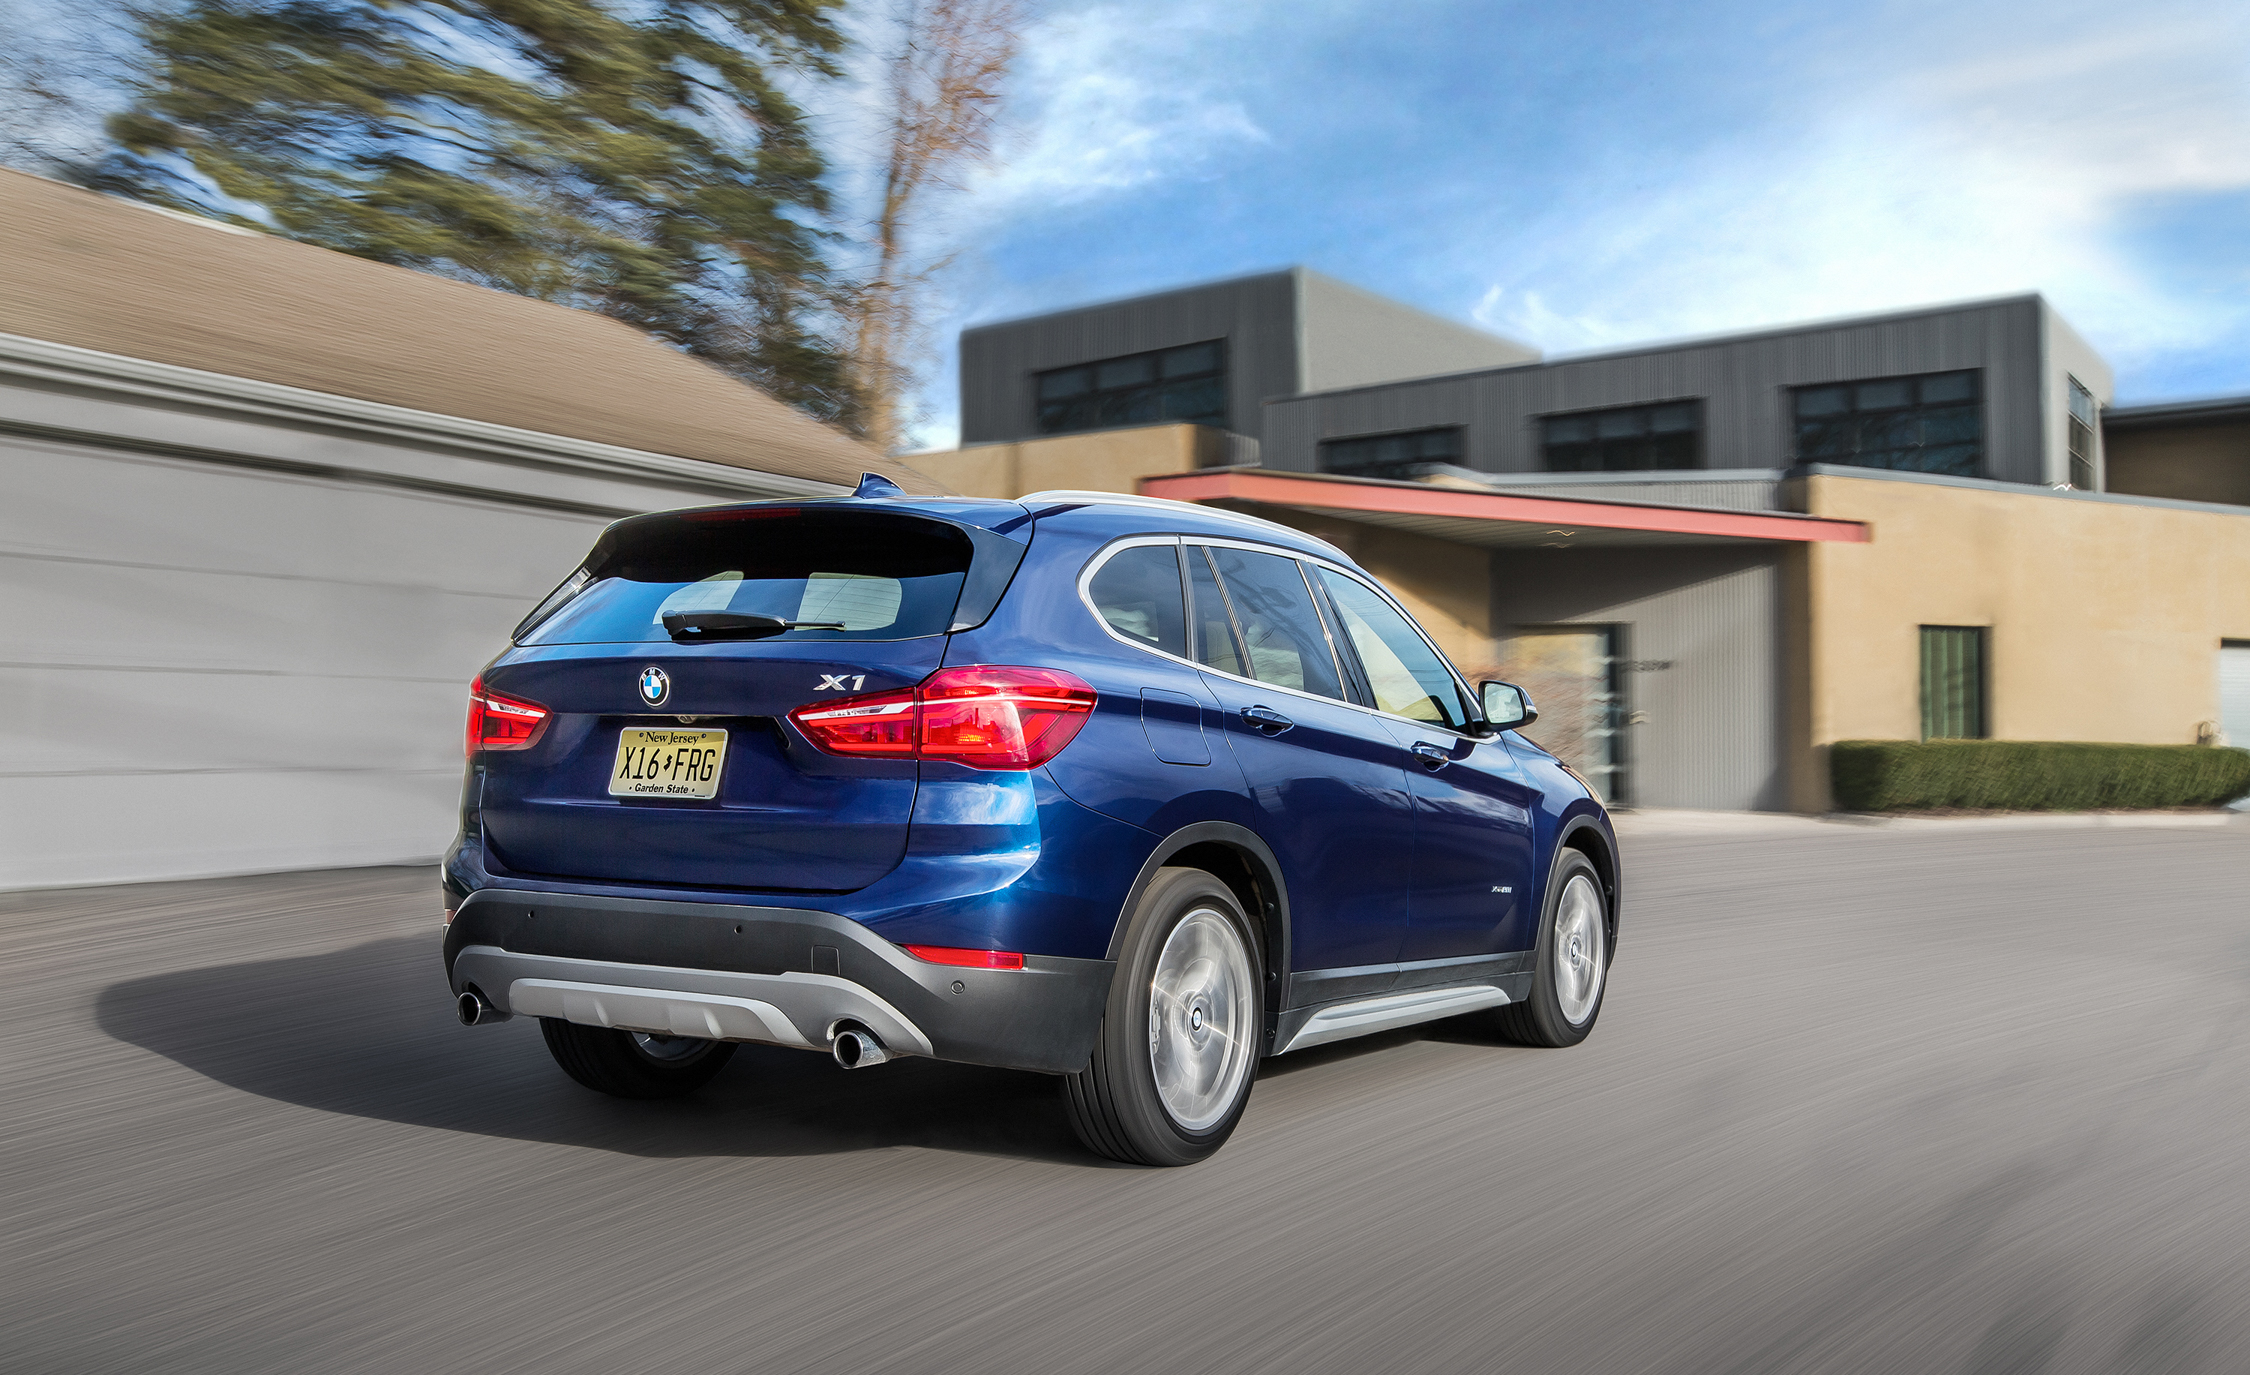 2016 BMW X1 XDrive28i Blue Metallic Test Drive Rear And Side View (View 4 of 36)